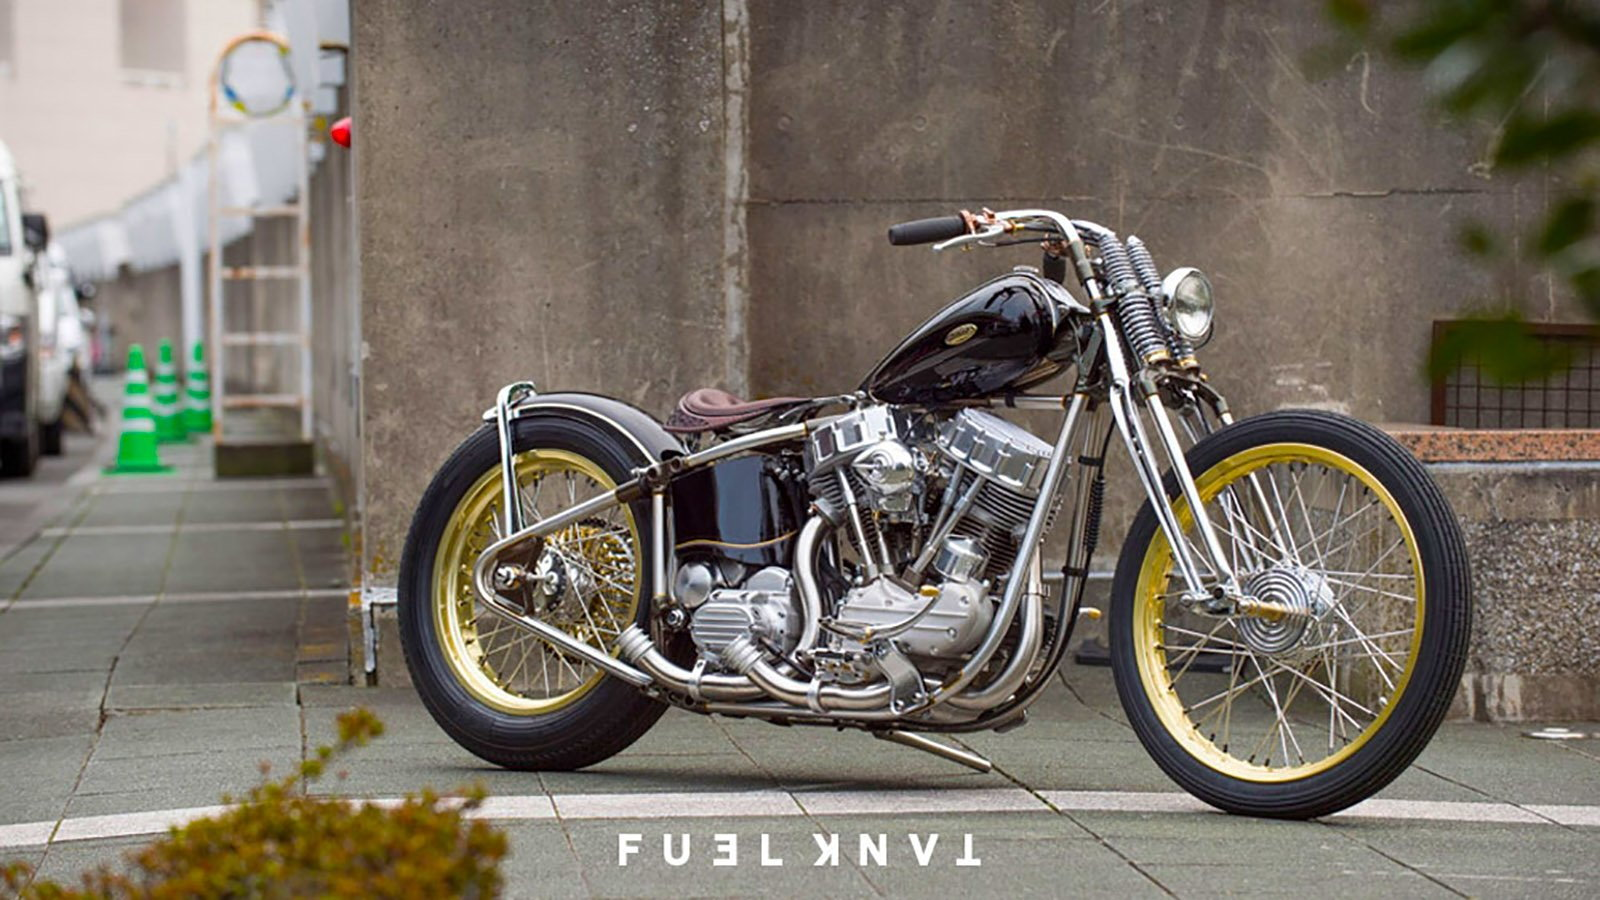 This 1981 FXS 80 Became Something Truly Unique In Japan